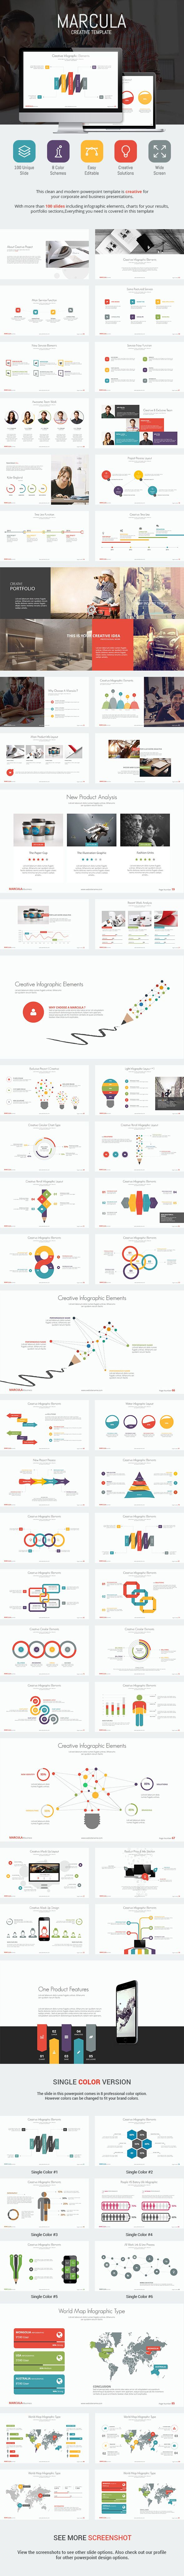 Marcula - Presentation Template (Powerpoint Templates) Marcula 20 20Preview 20Full 20Image